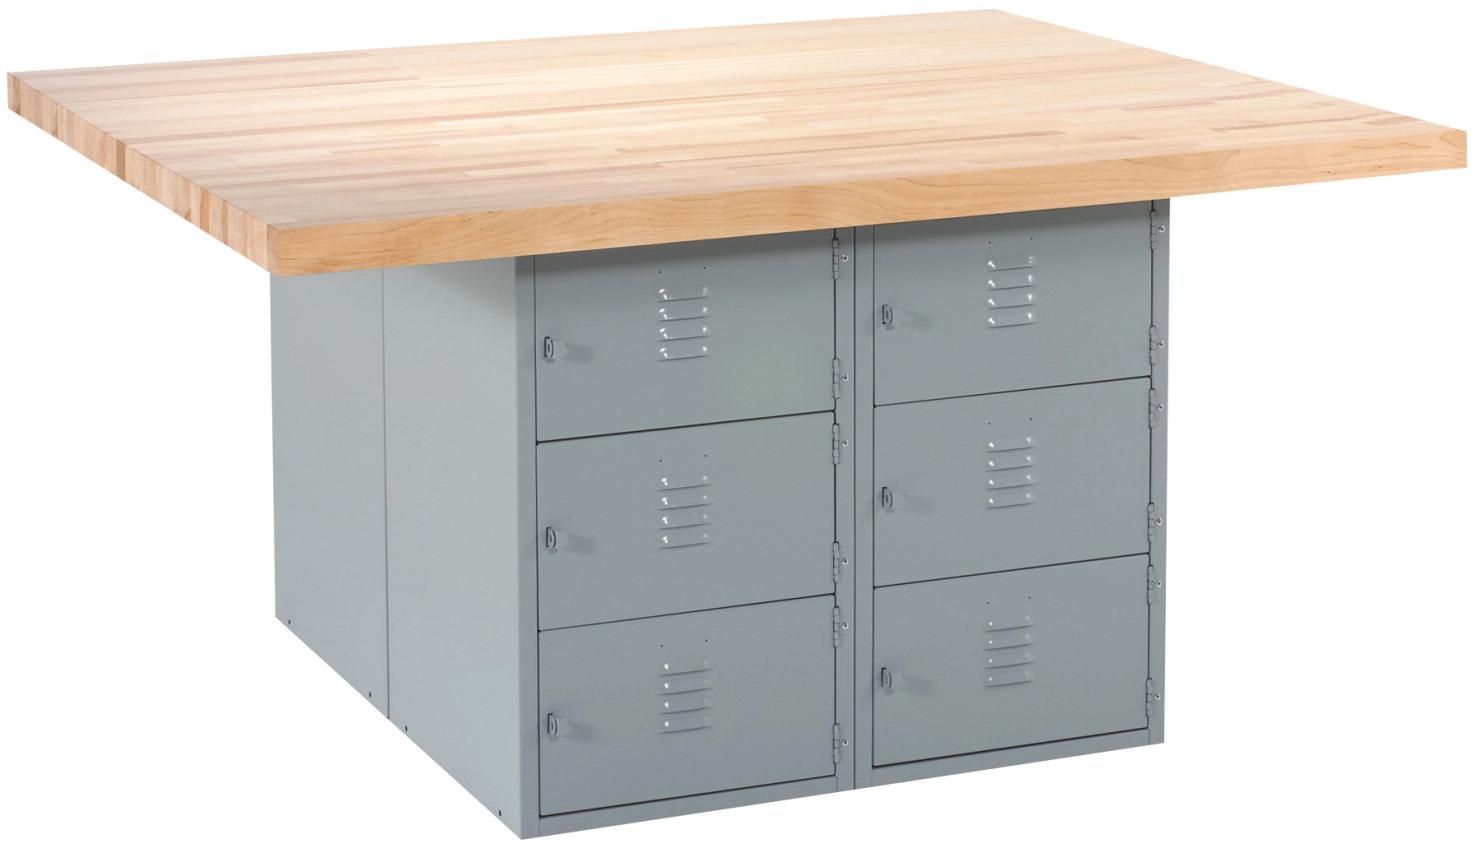 Diversified Woodcrafts 4 Station 12 Locker Workbench with 4 Vises, 64 x 54 x 33-1/4 Inches, Various Options